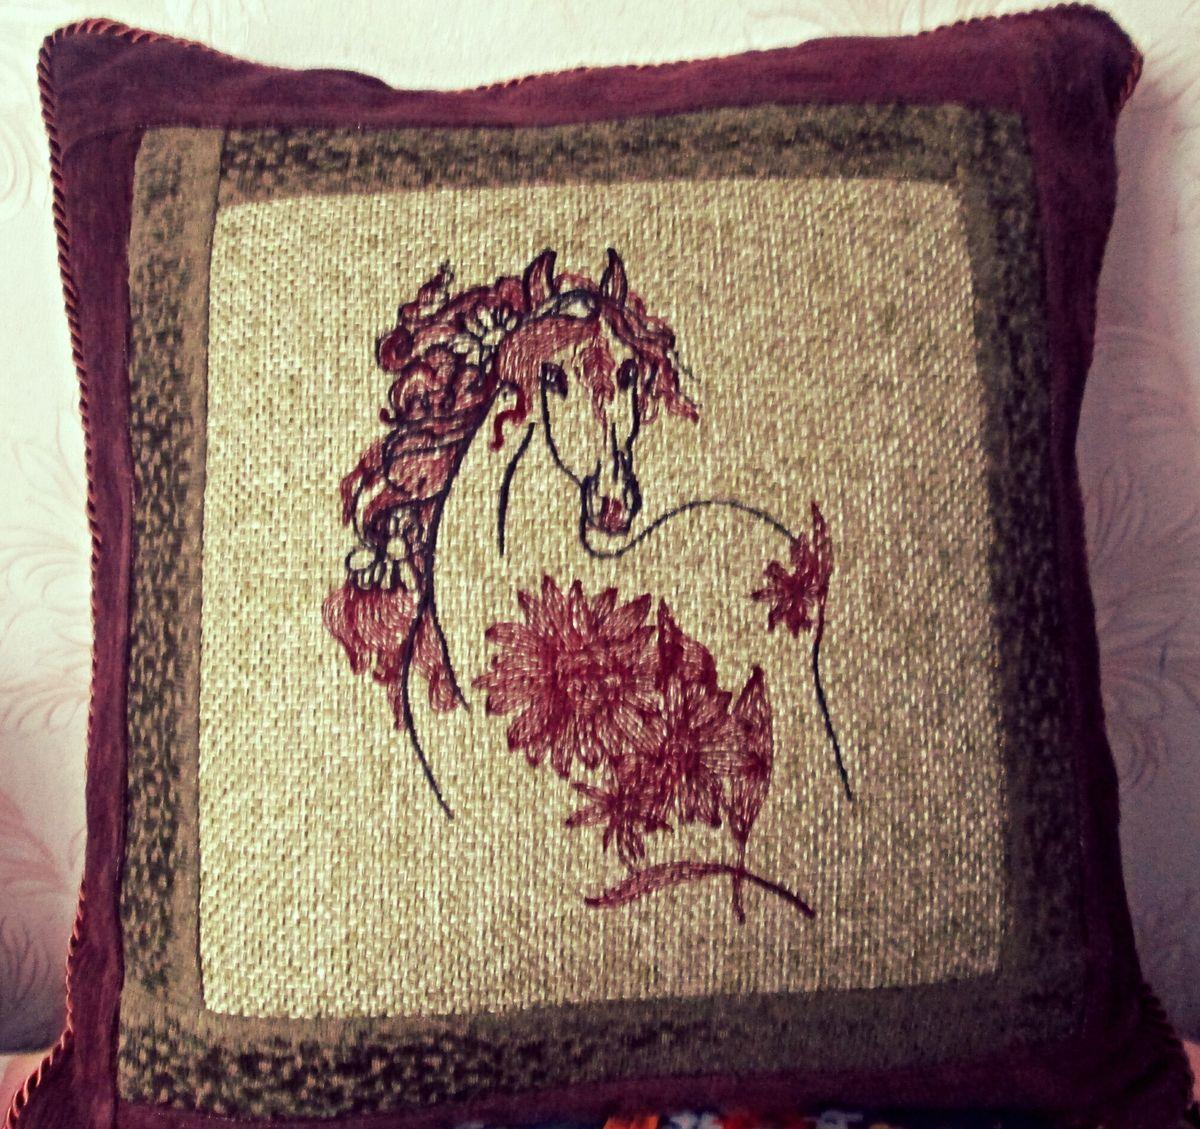 Cushion with Orange horse embroidery design